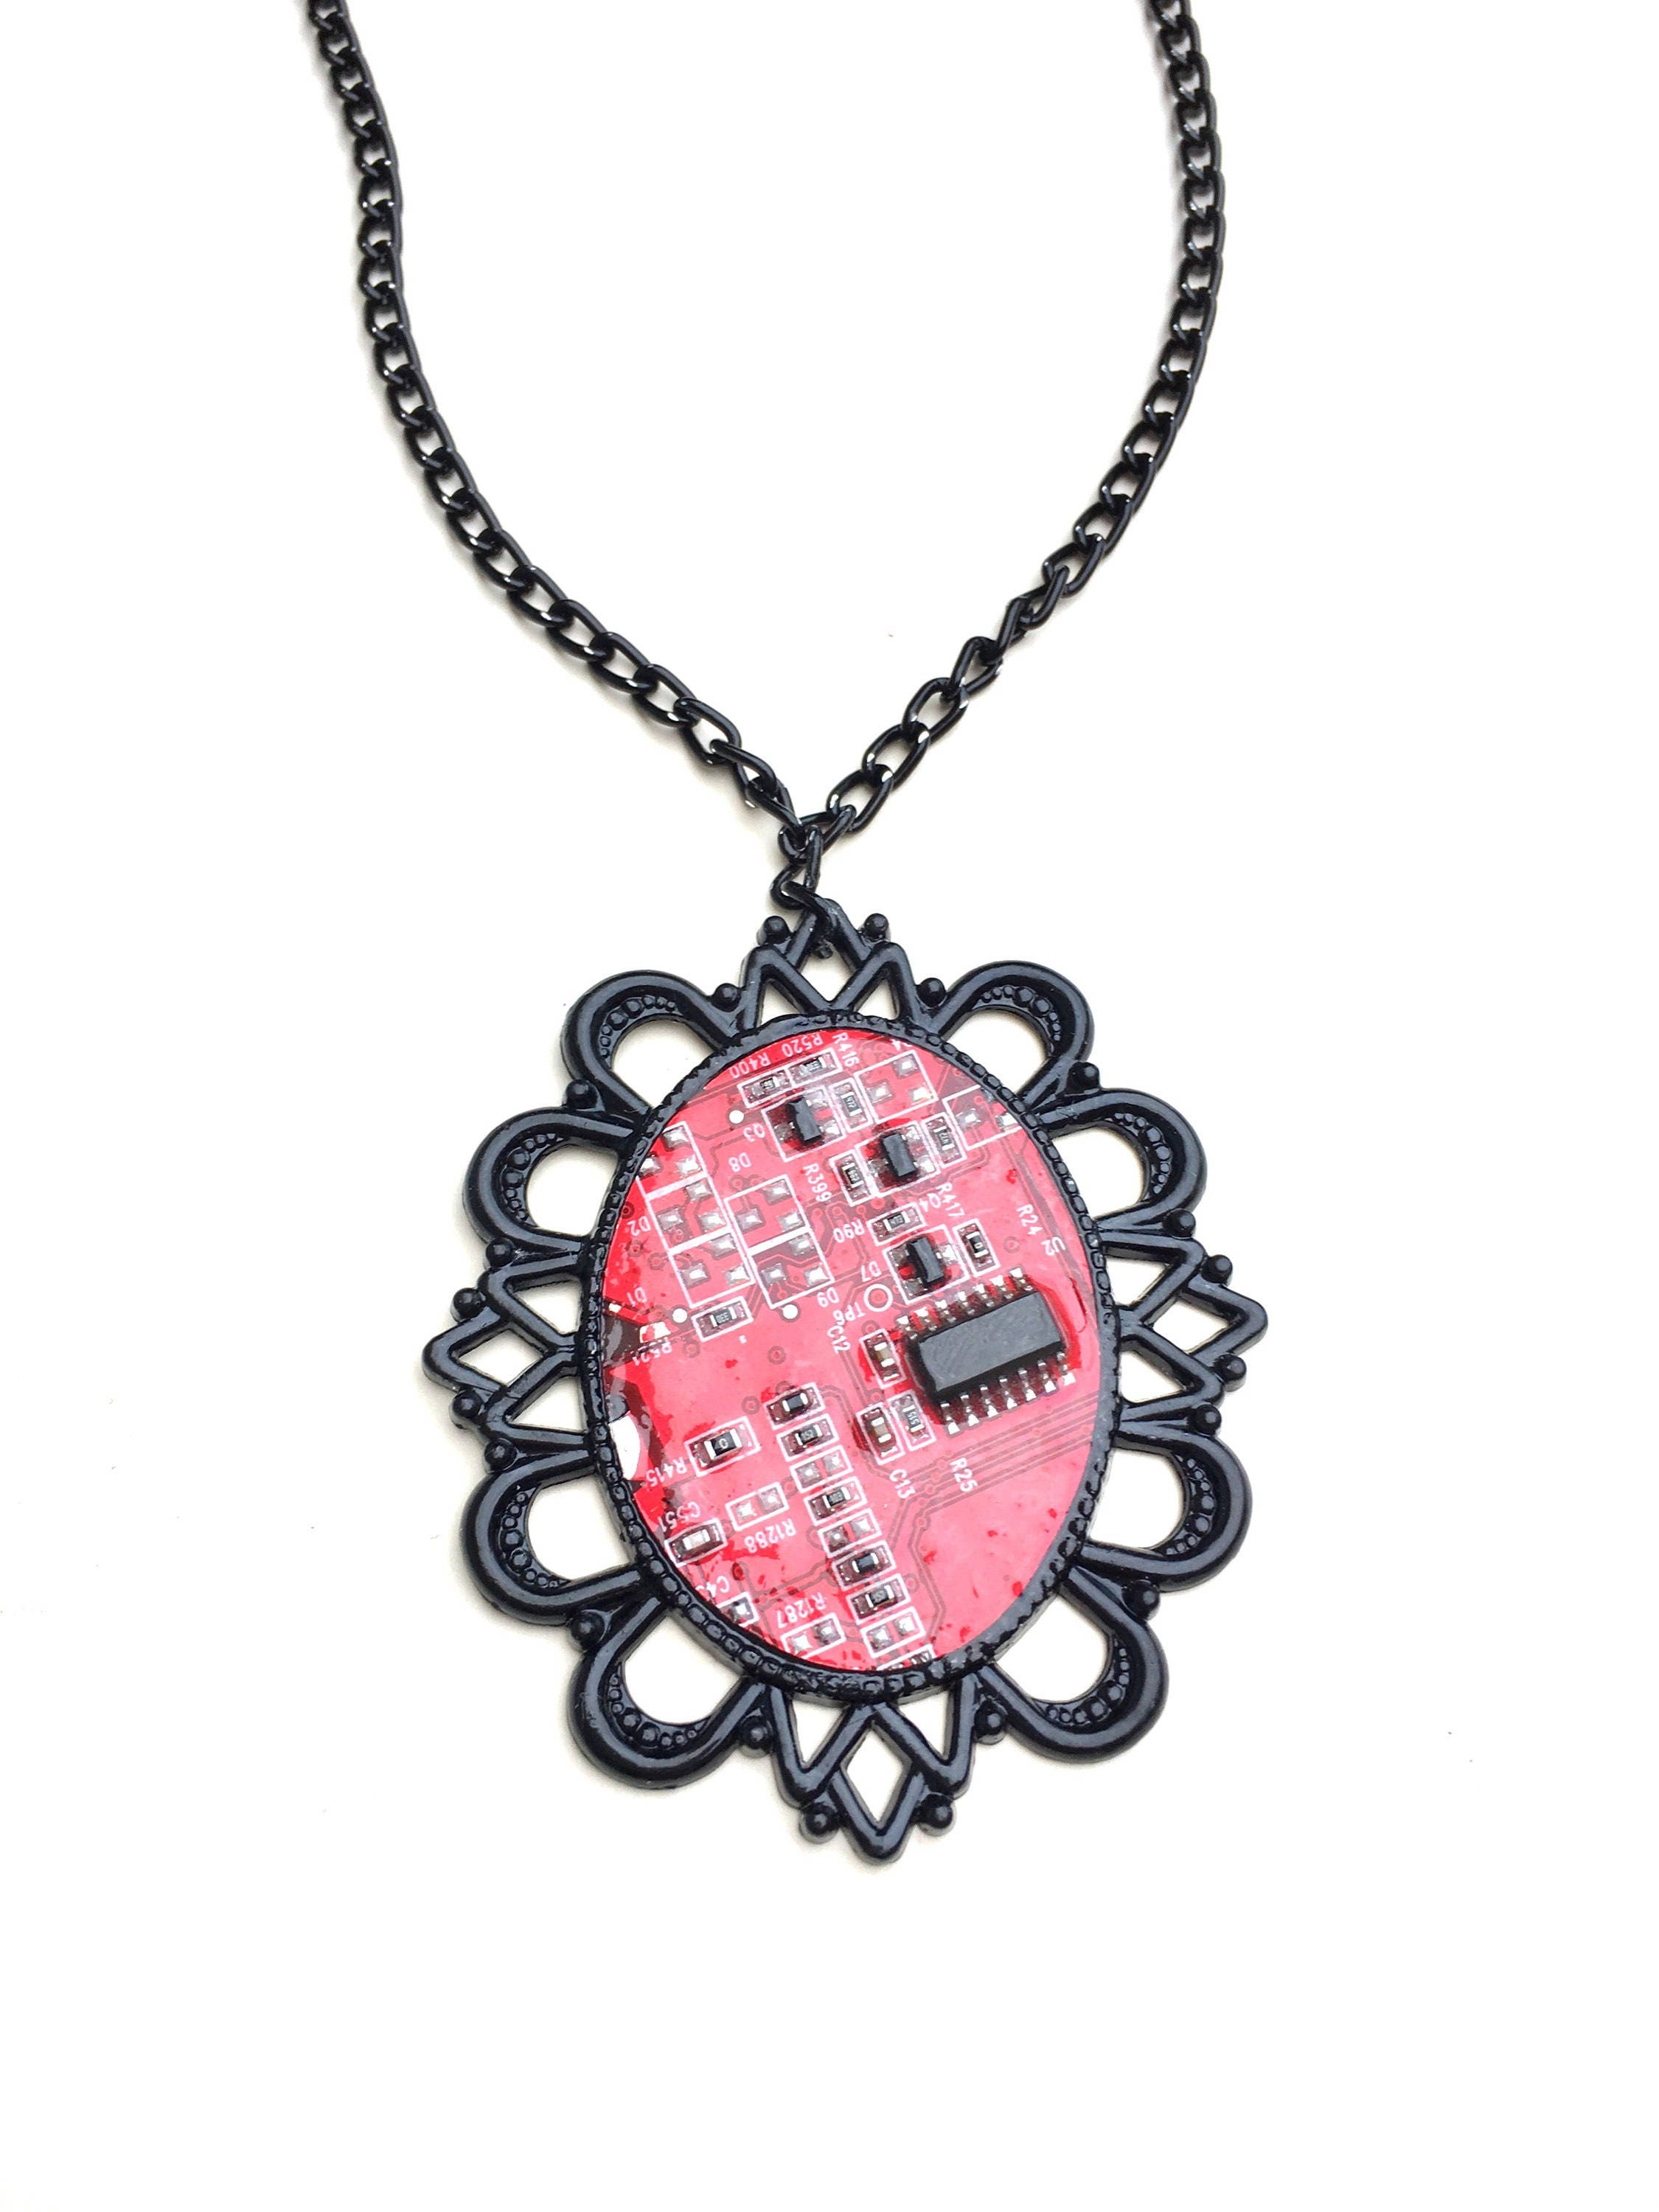 shop necklace ruby red necklaces rose gold pendant quartz